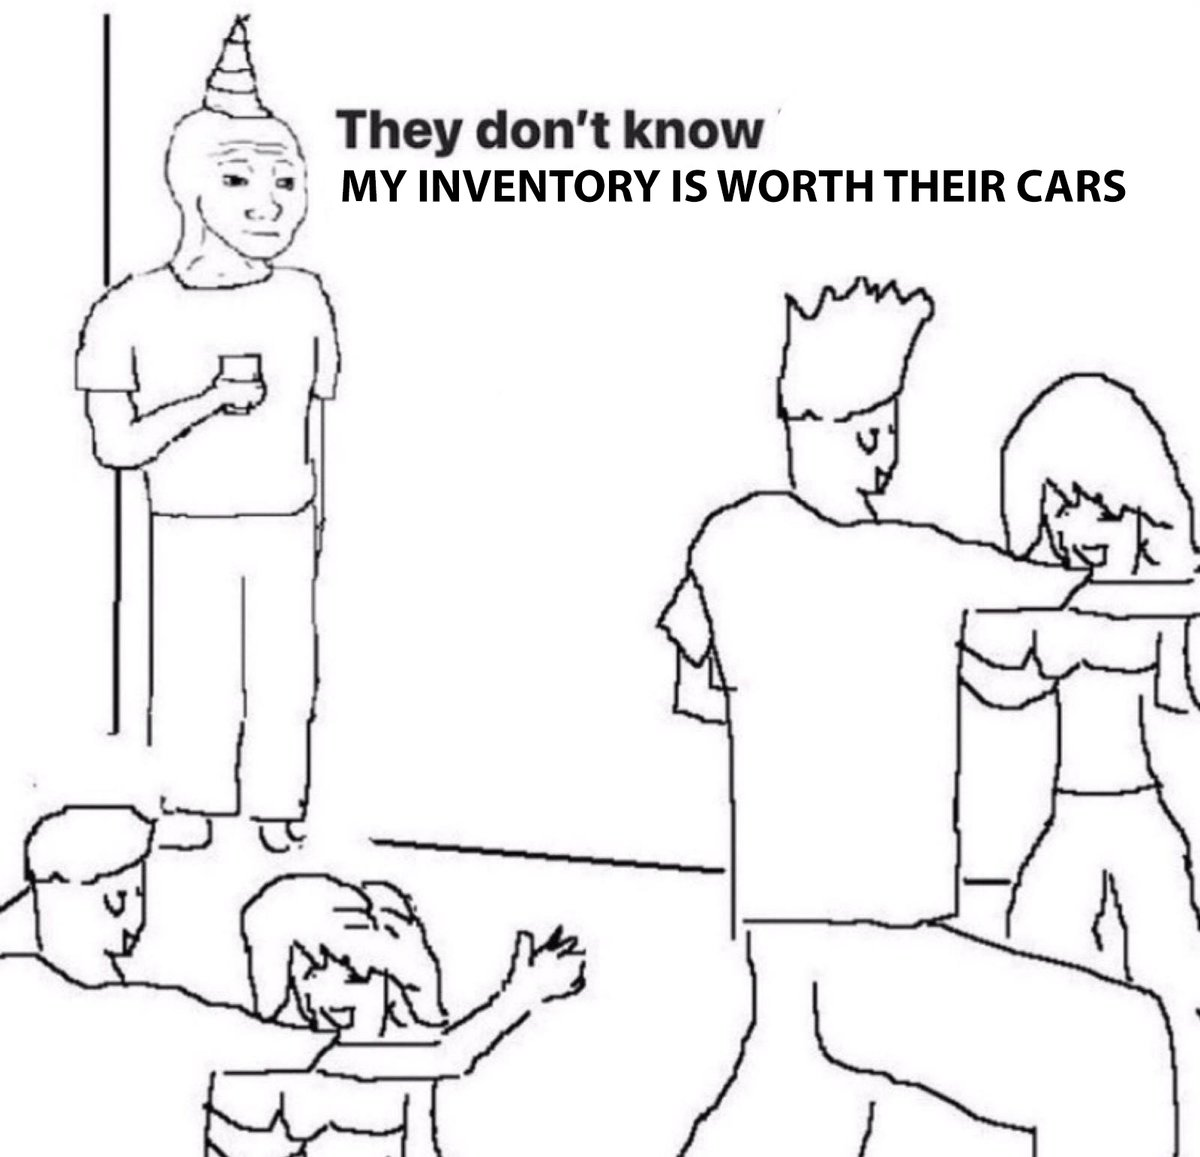 What is your total inventory value?